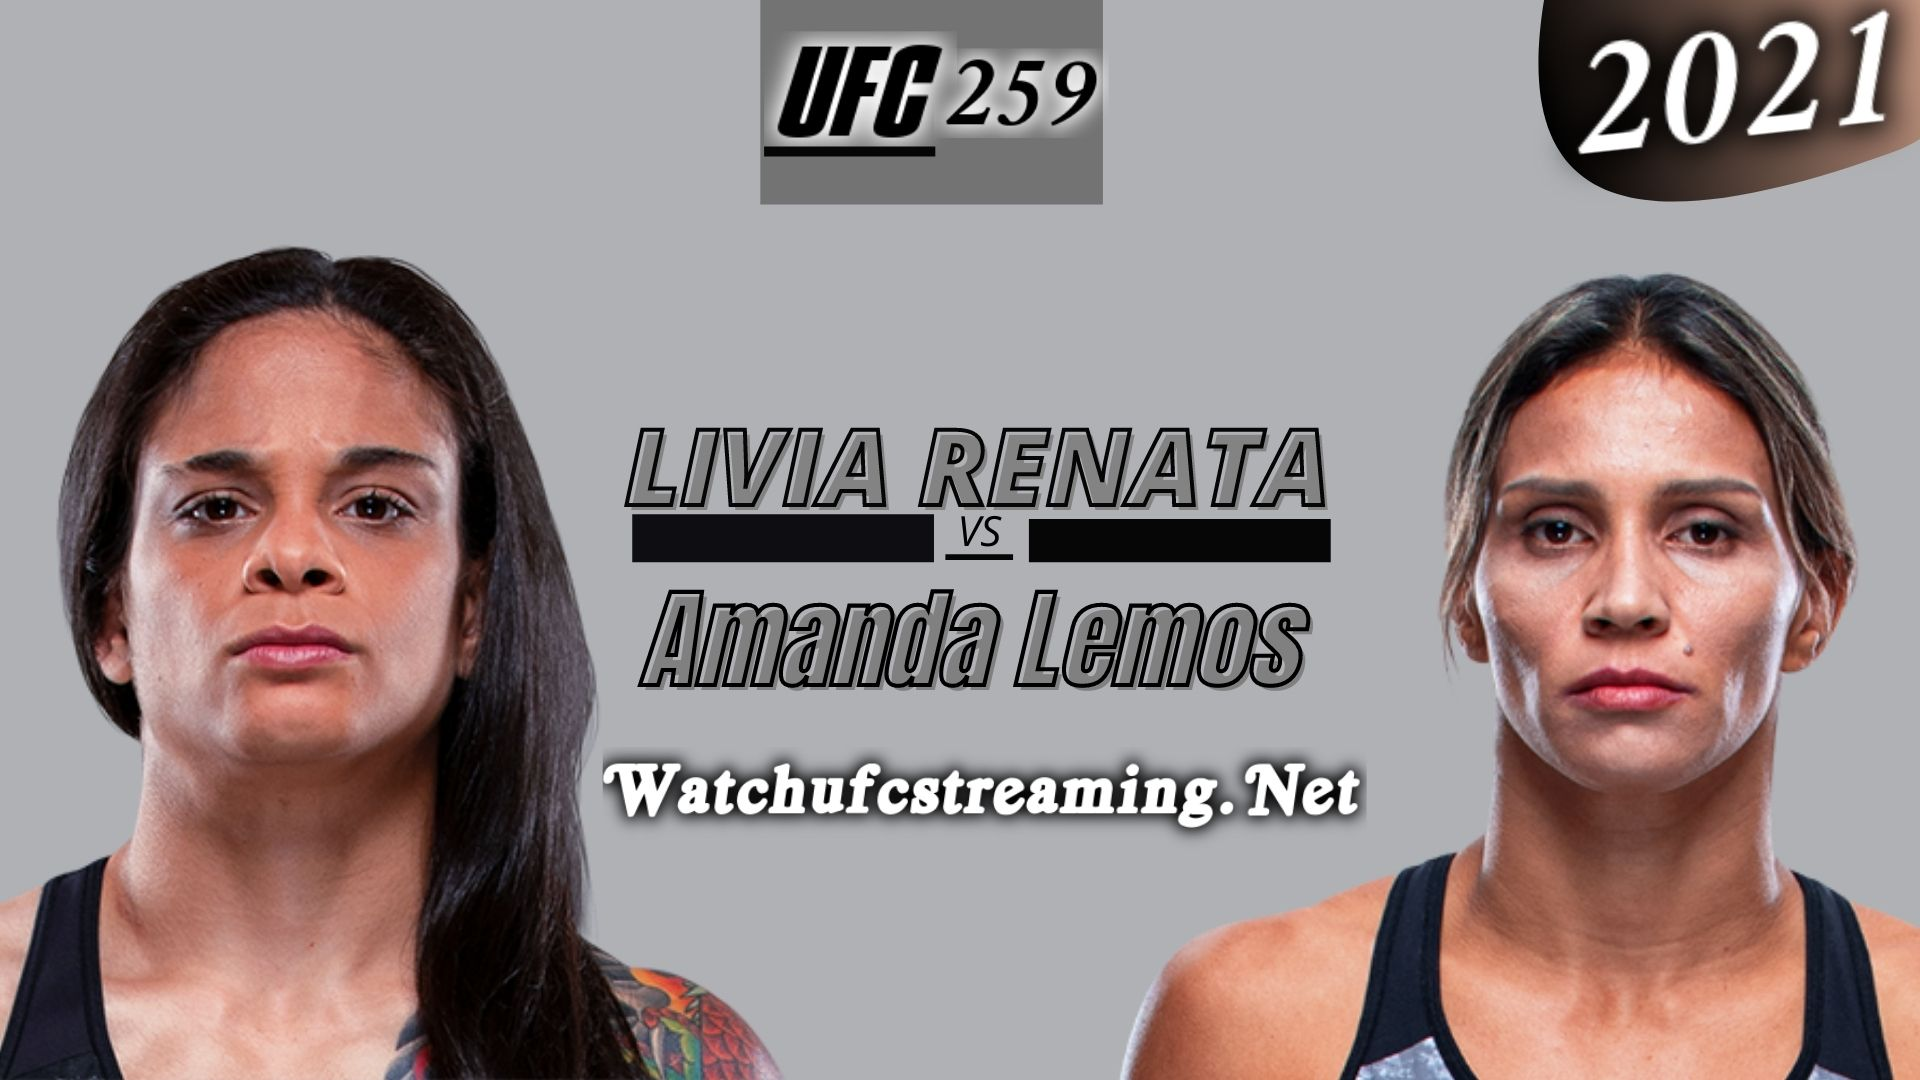 UFC 259: Livia Renata Vs Amanda Lemos Highlights 2021 | Strawweight